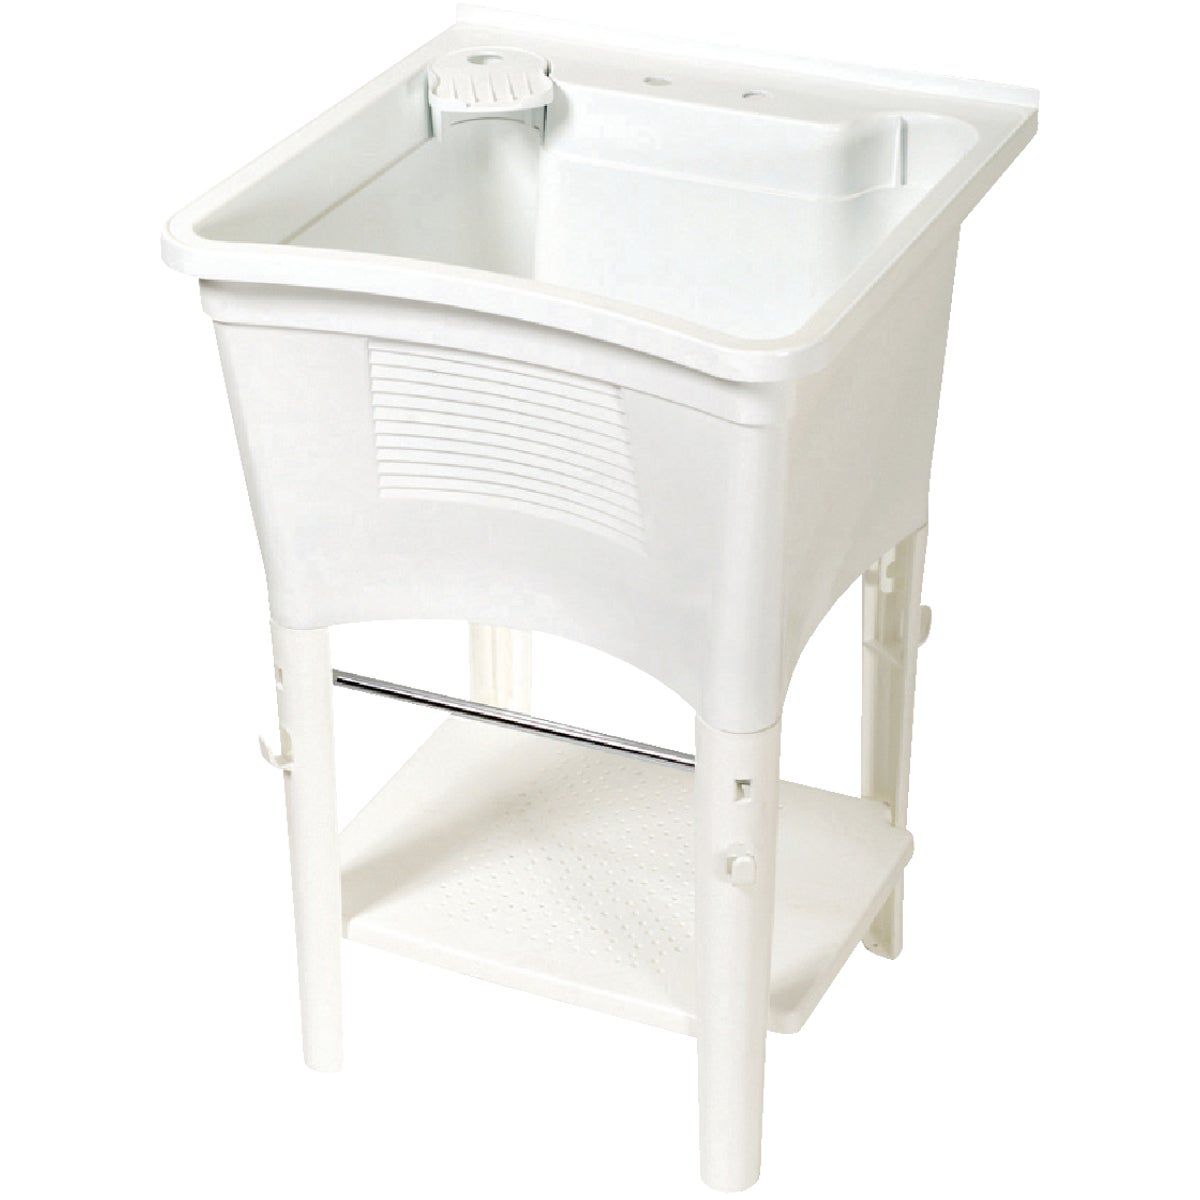 BASIC ERGO LAUNDRY TUB - LT2005W by Zenith Prod Corp